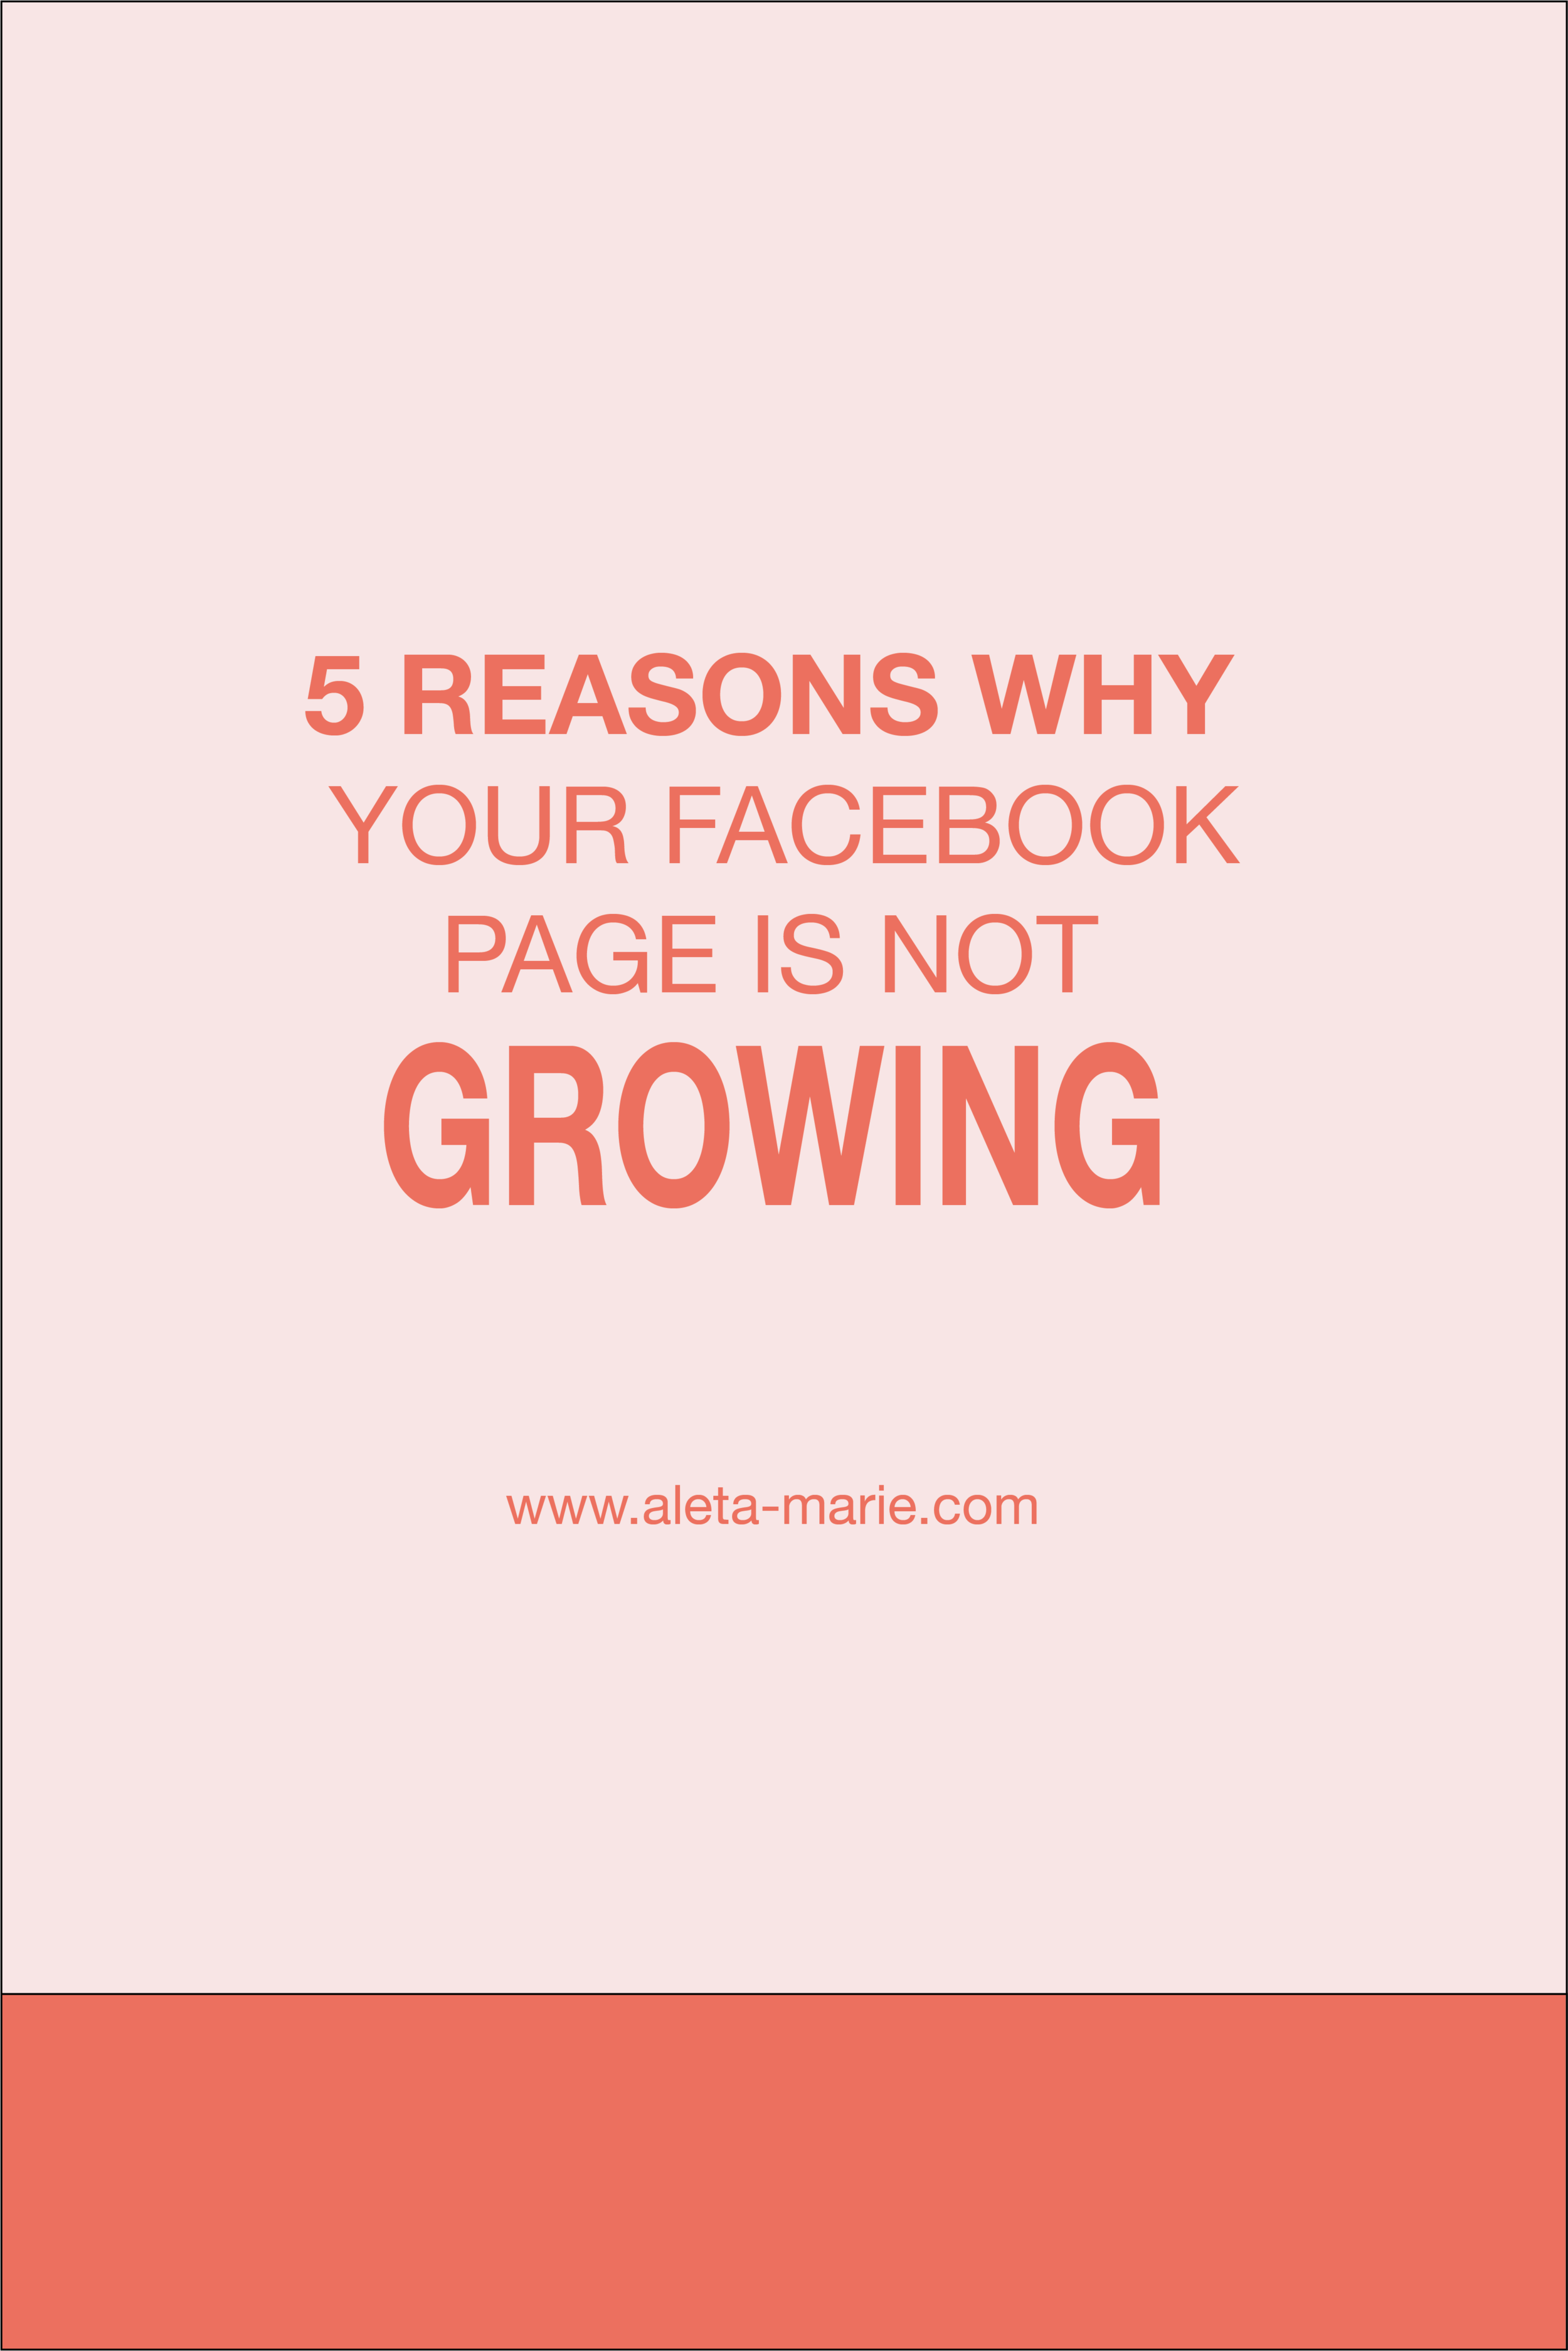 5 Reasons why your facebook page is not growing.png